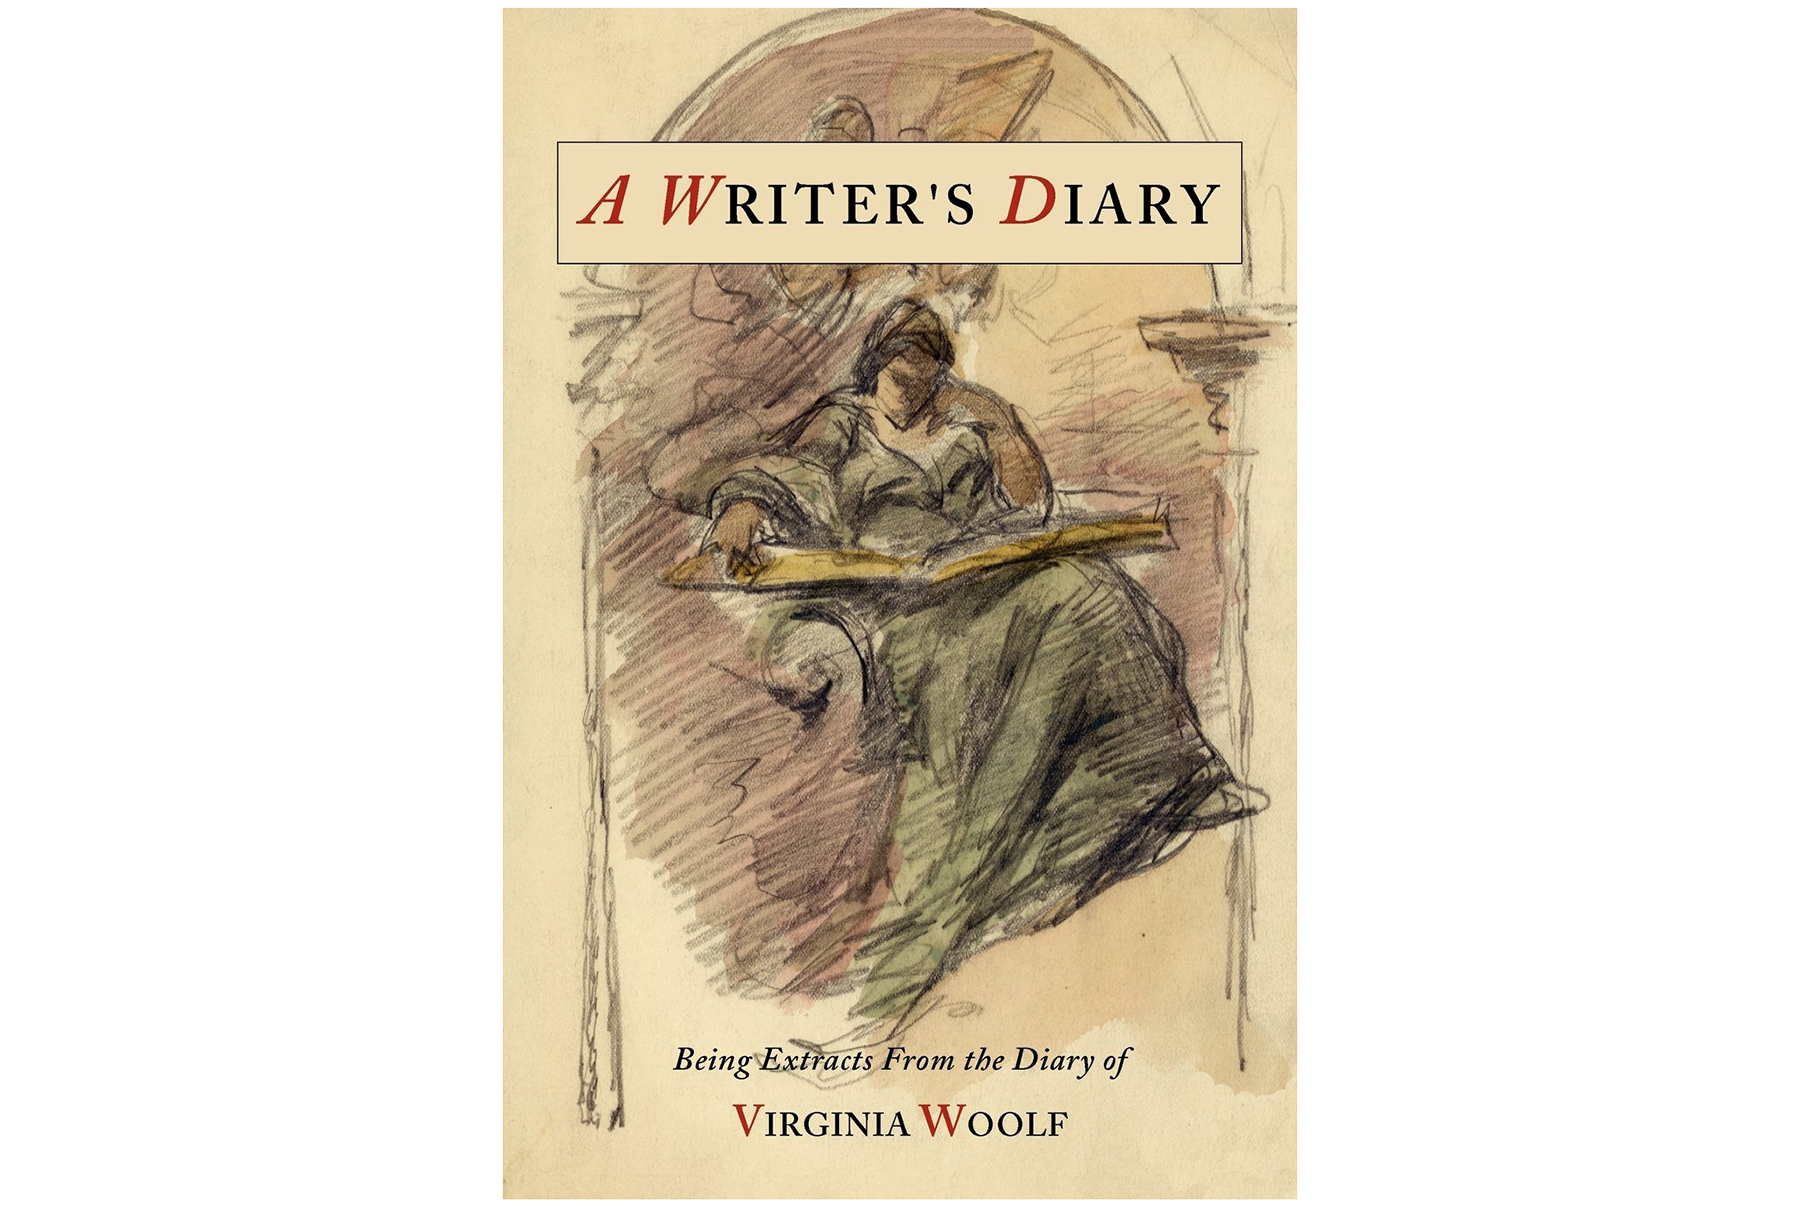 A Writer's Diary, by Virginia Woolf